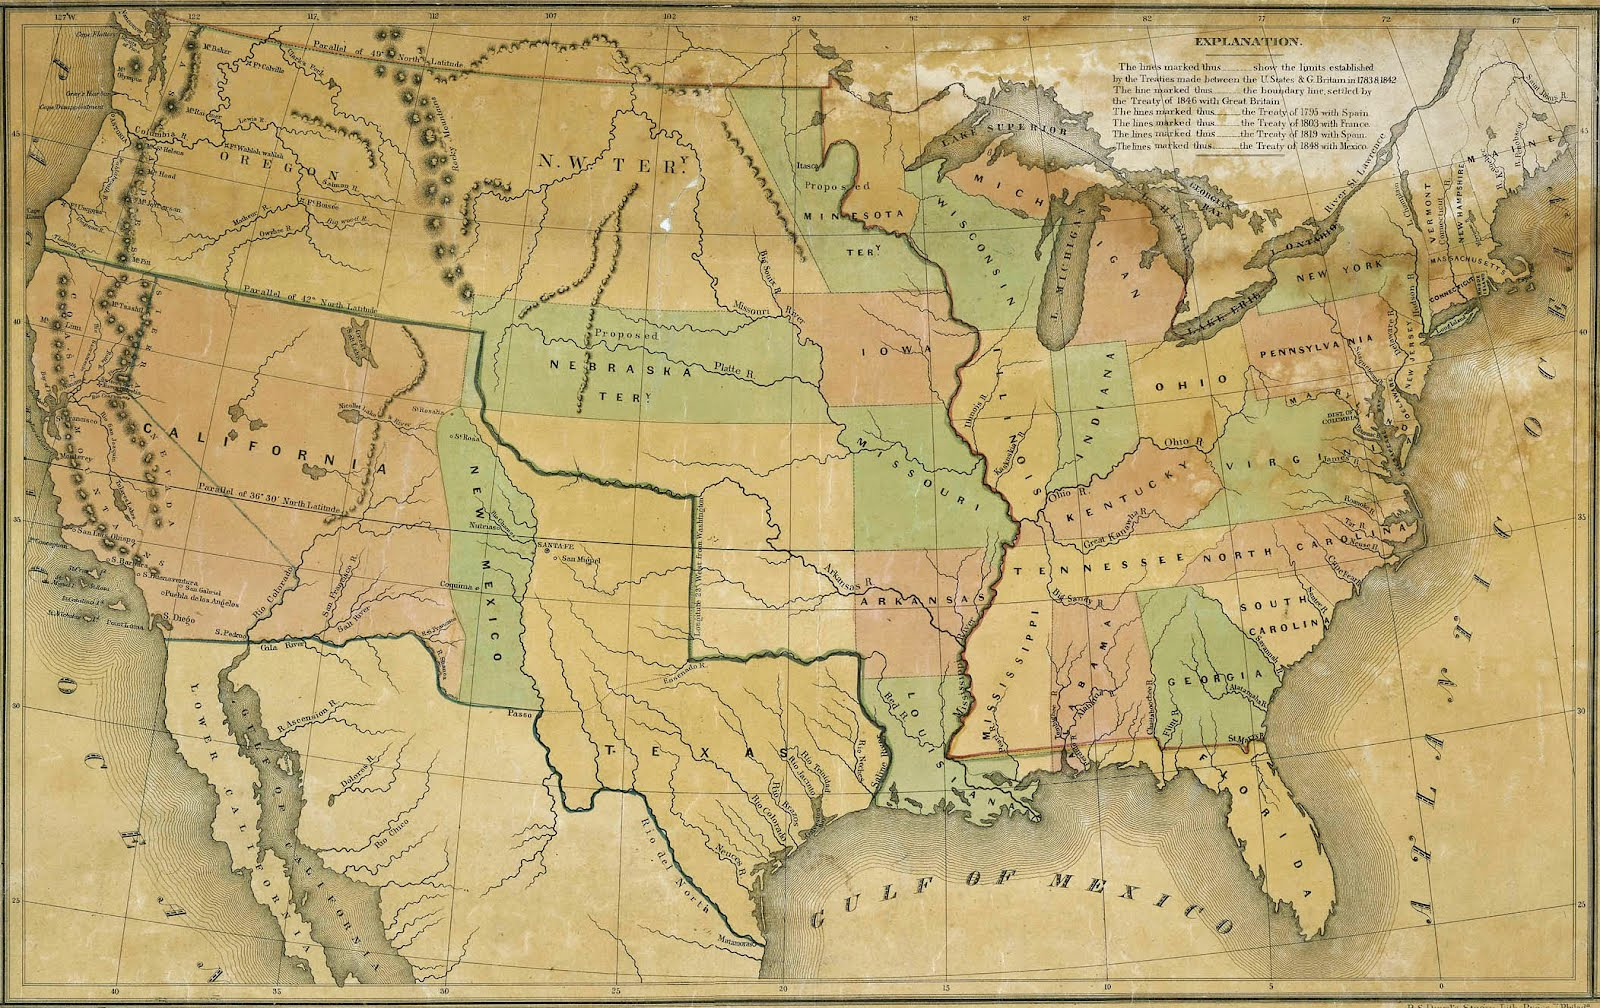 Antique Prints Blog April - Map of the us in 1840